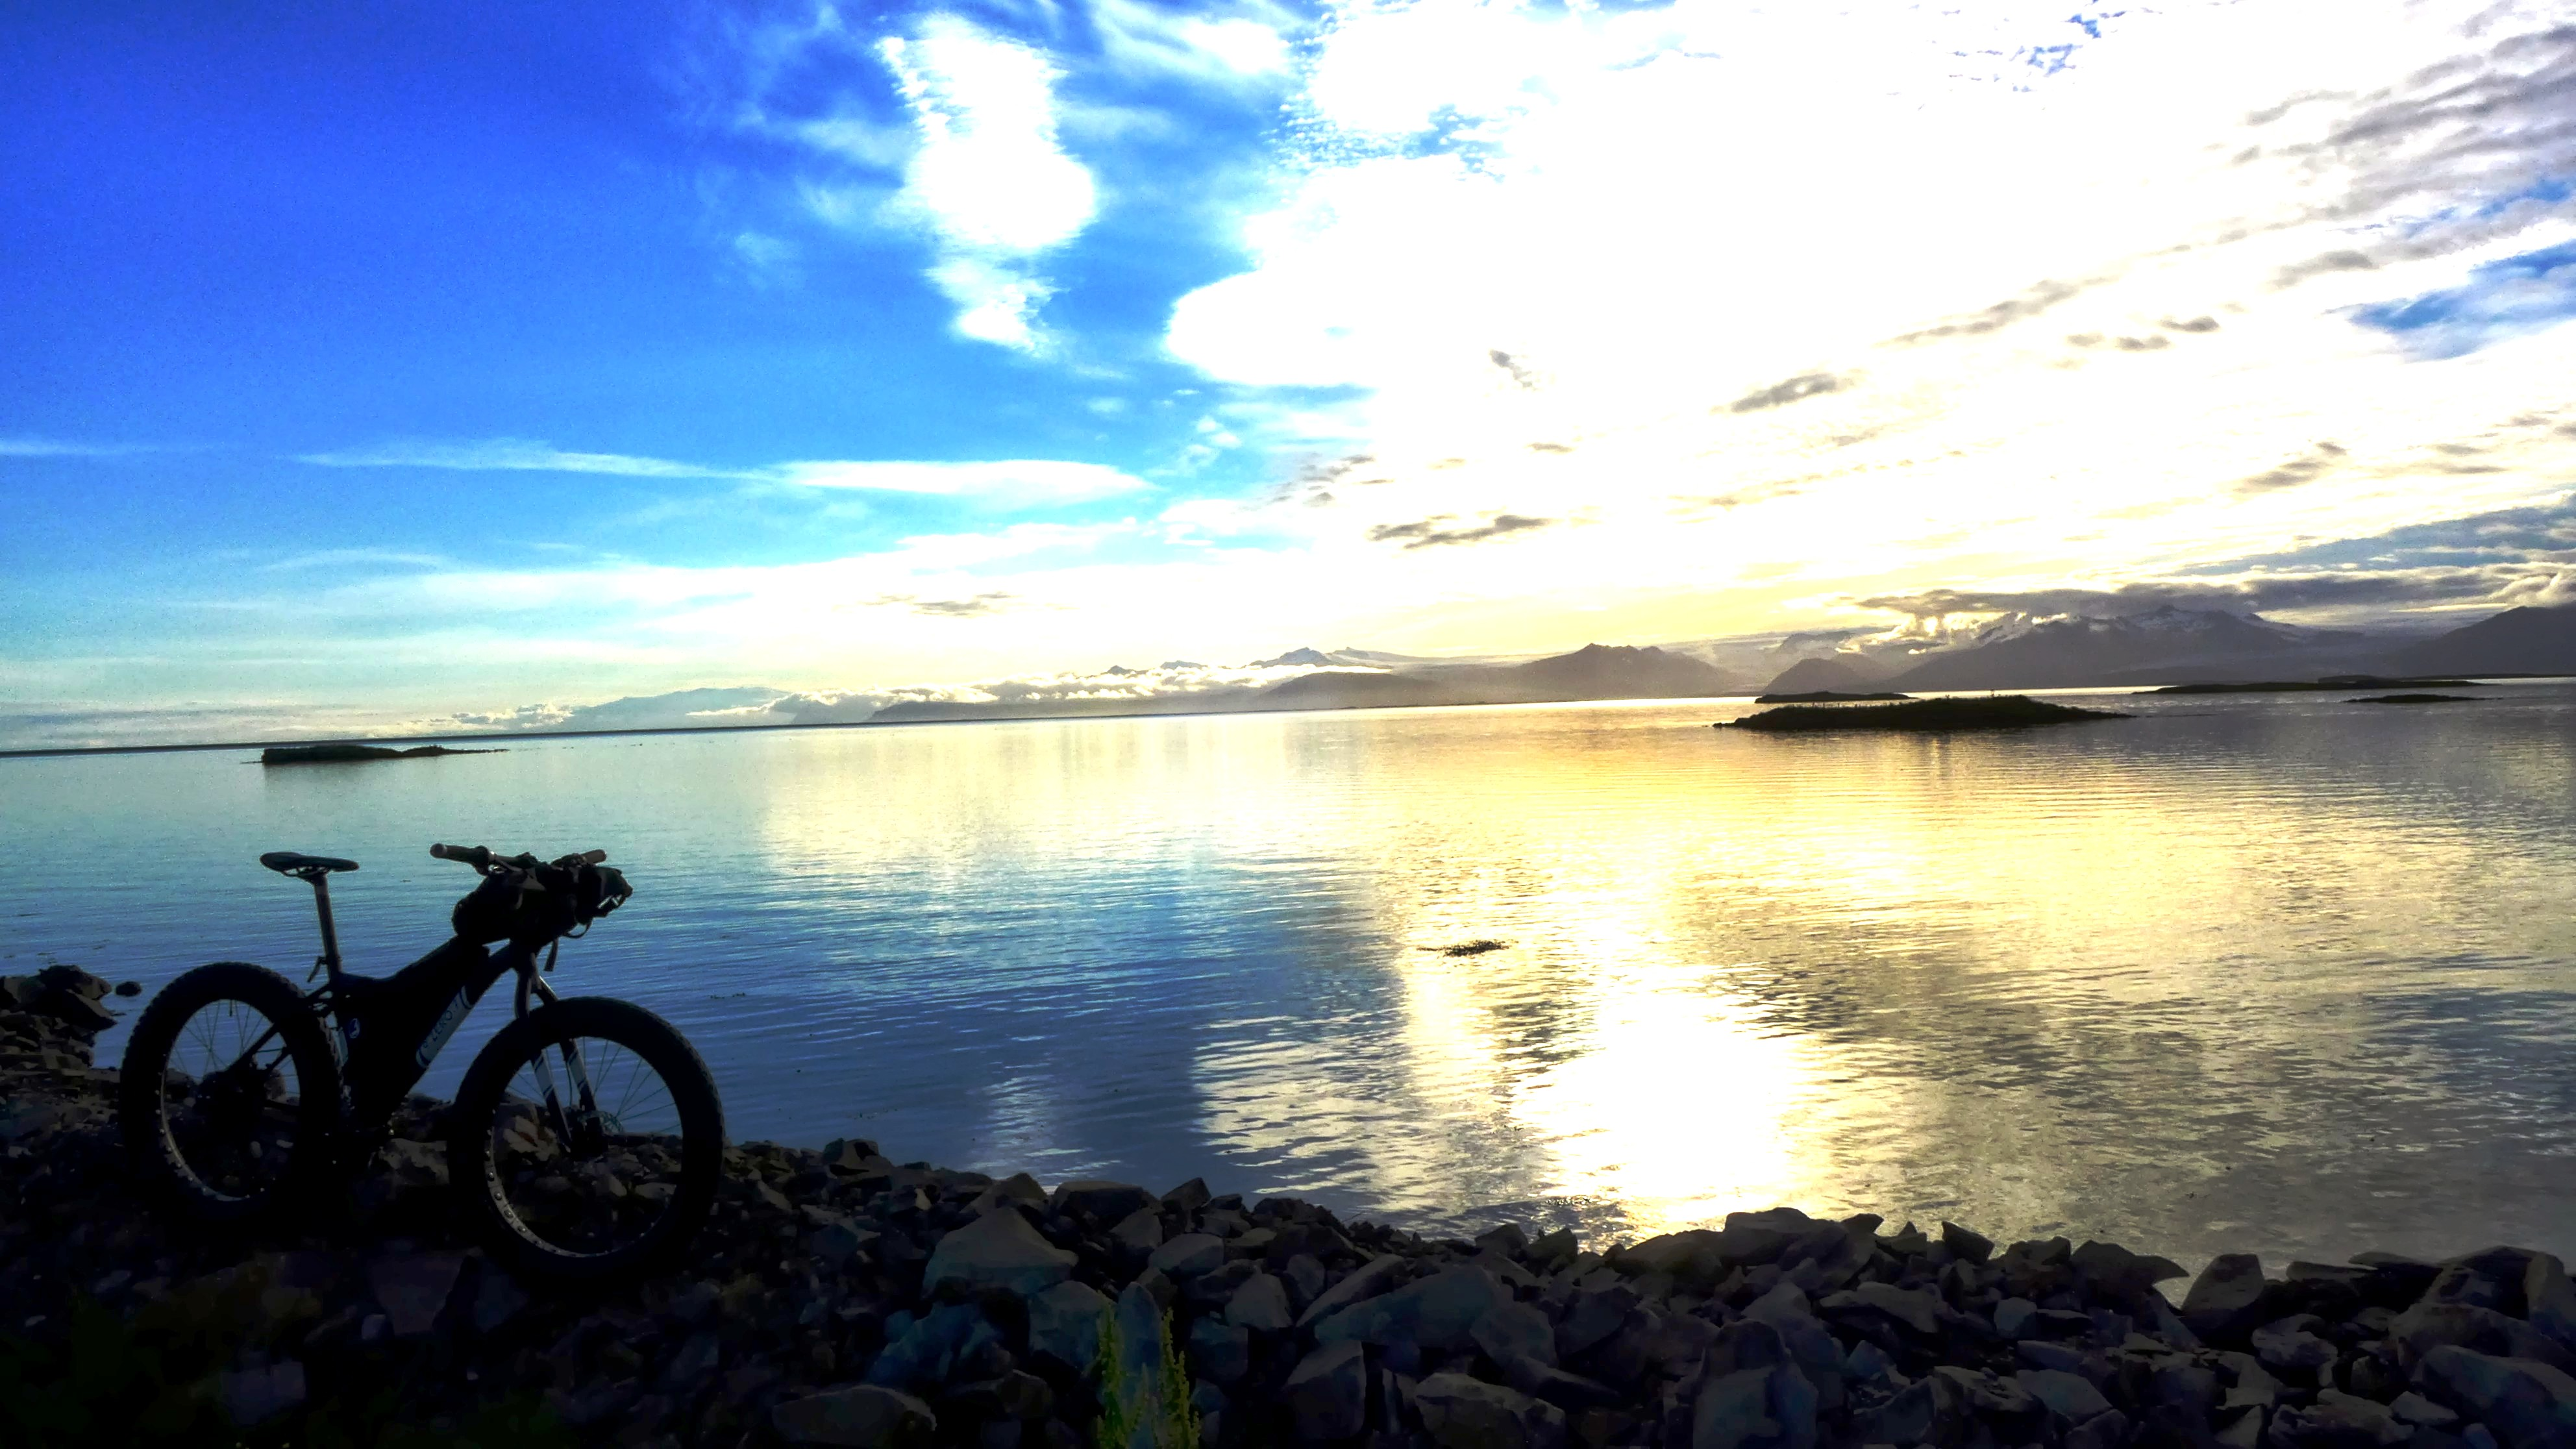 Unchained Iceland_bike against big blue sky